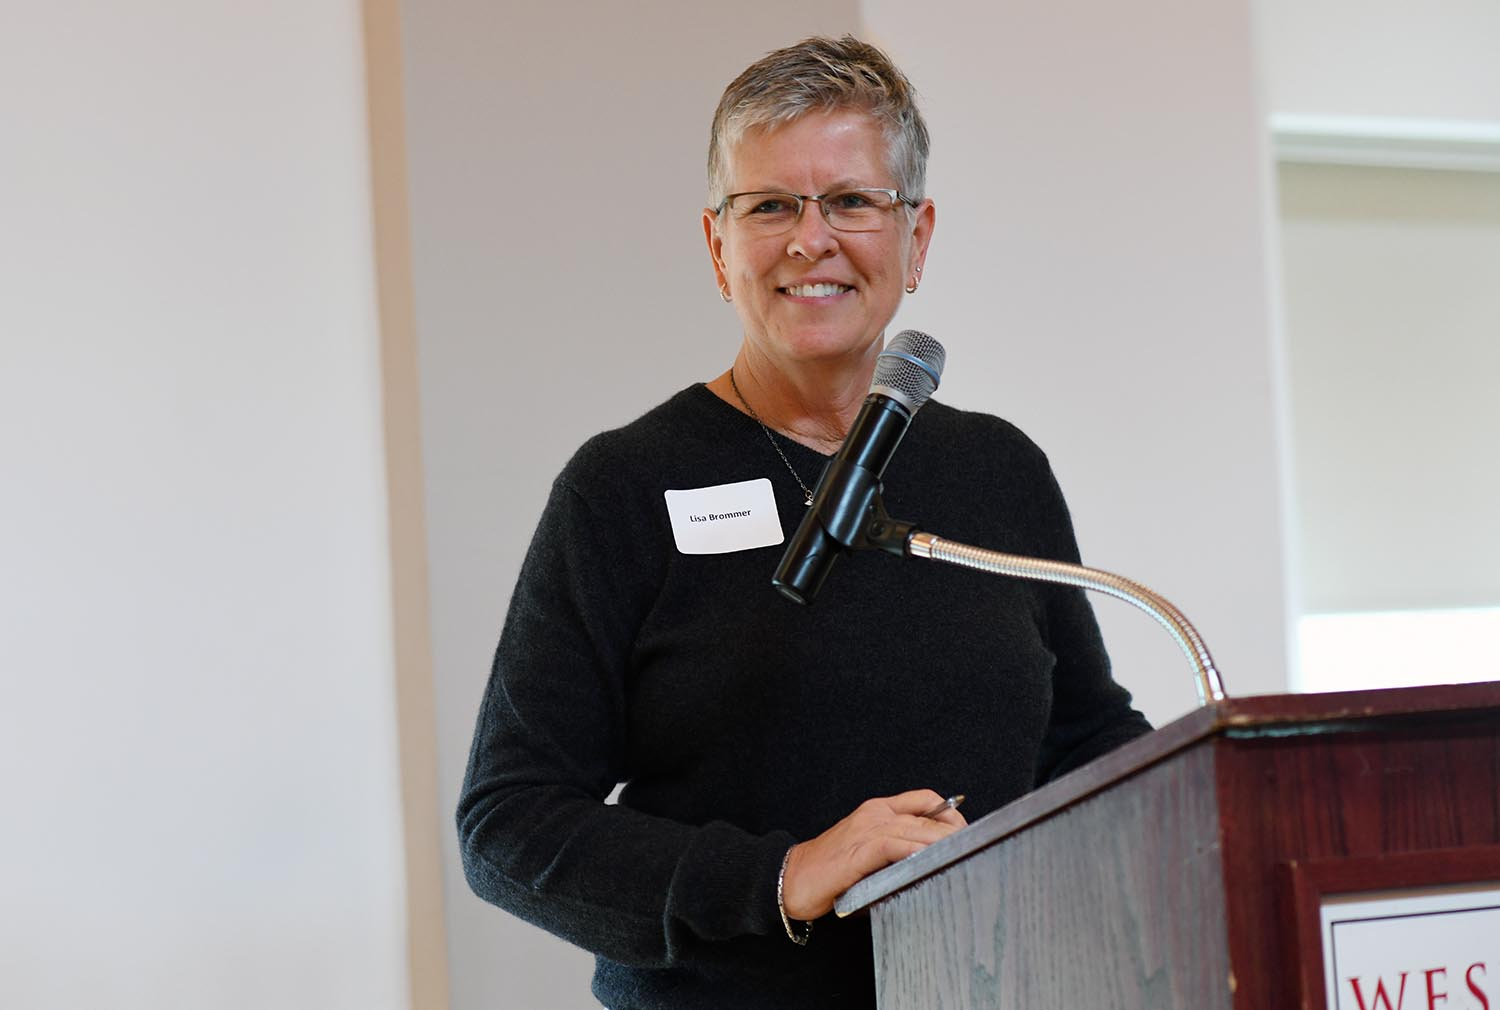 Lisa Brommer, associate vice president for the Office of Human Resources, welcomed the employees and their guests to the event.